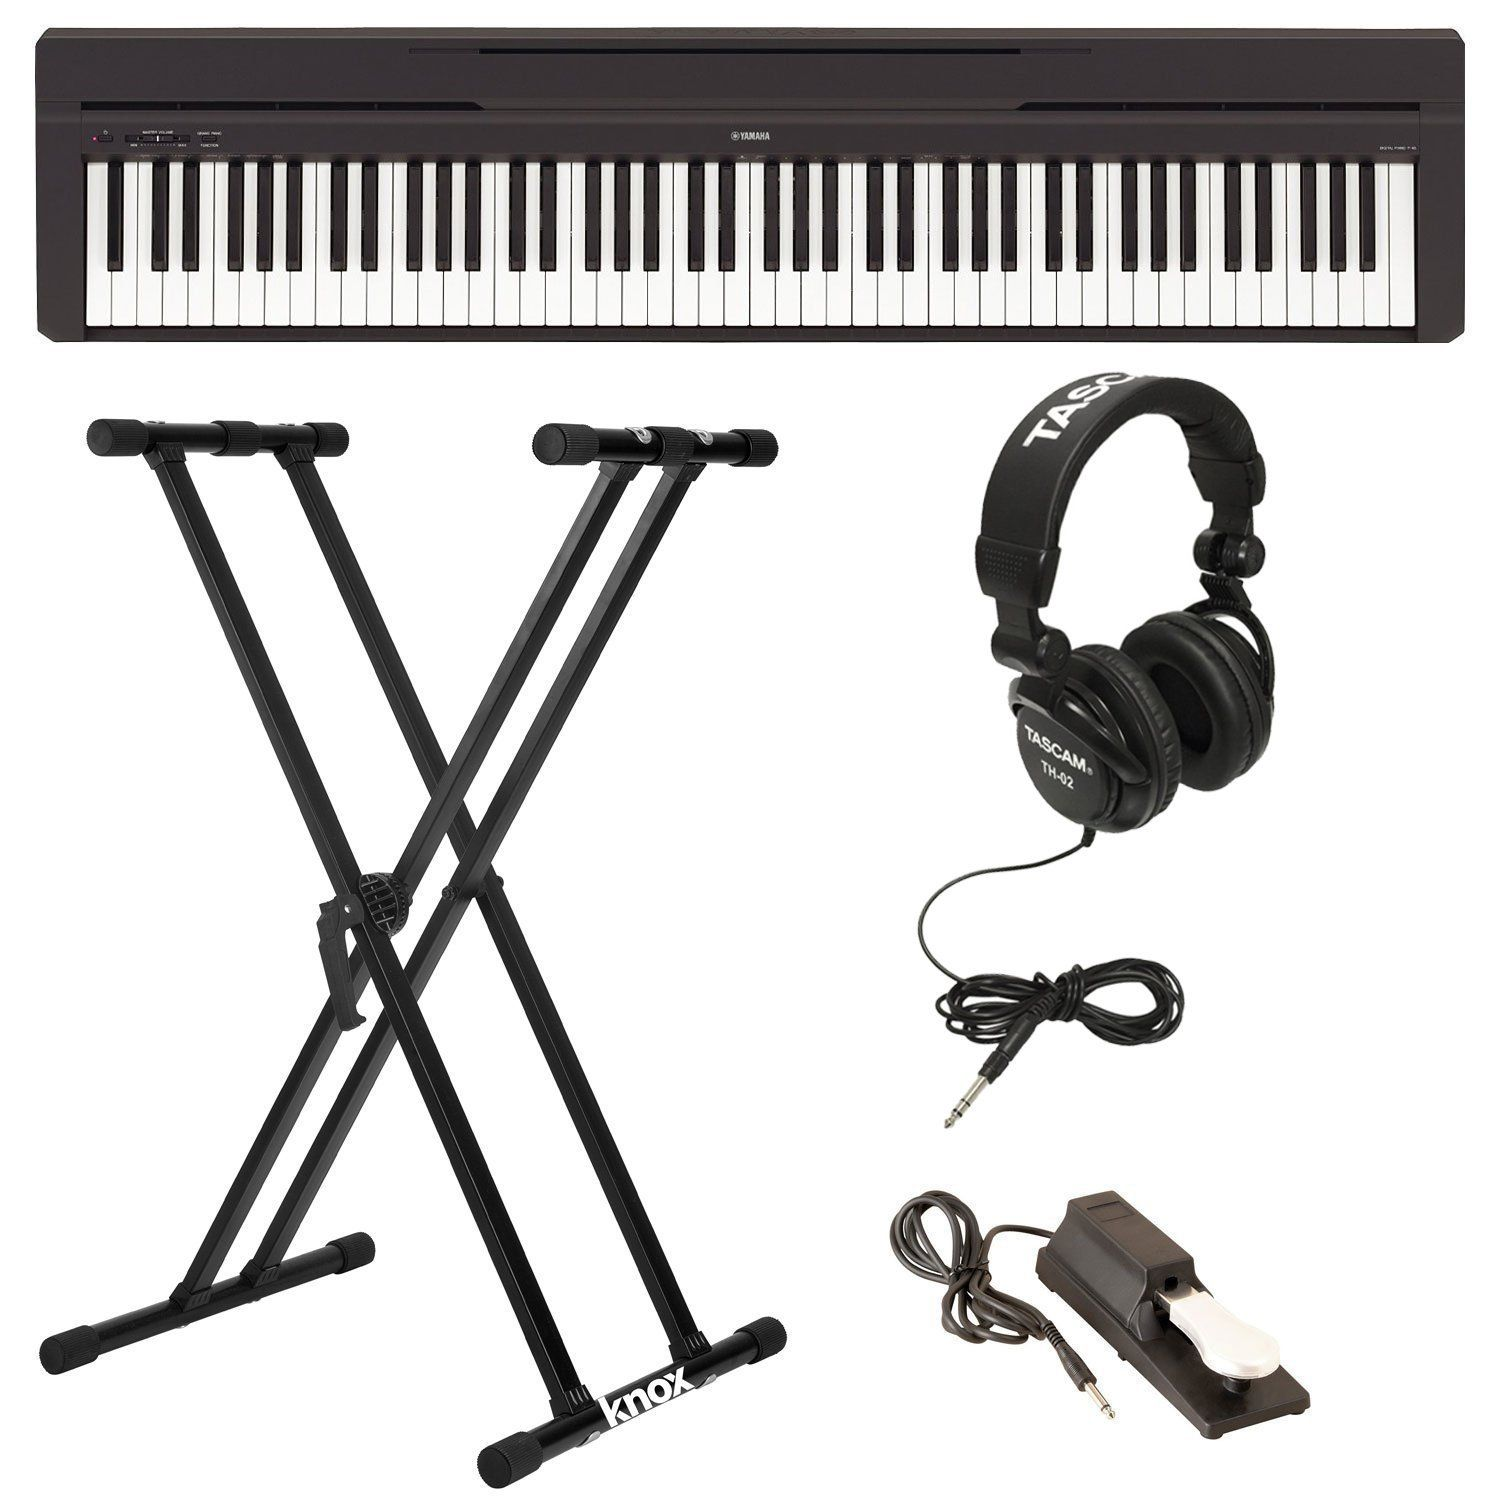 Yamaha P45b Digital Piano With Knox Double X Keyboard Stand Full Size Headphones And Sustain Pedal By Yam Sustain Pedals Digital Piano Best Digital Piano